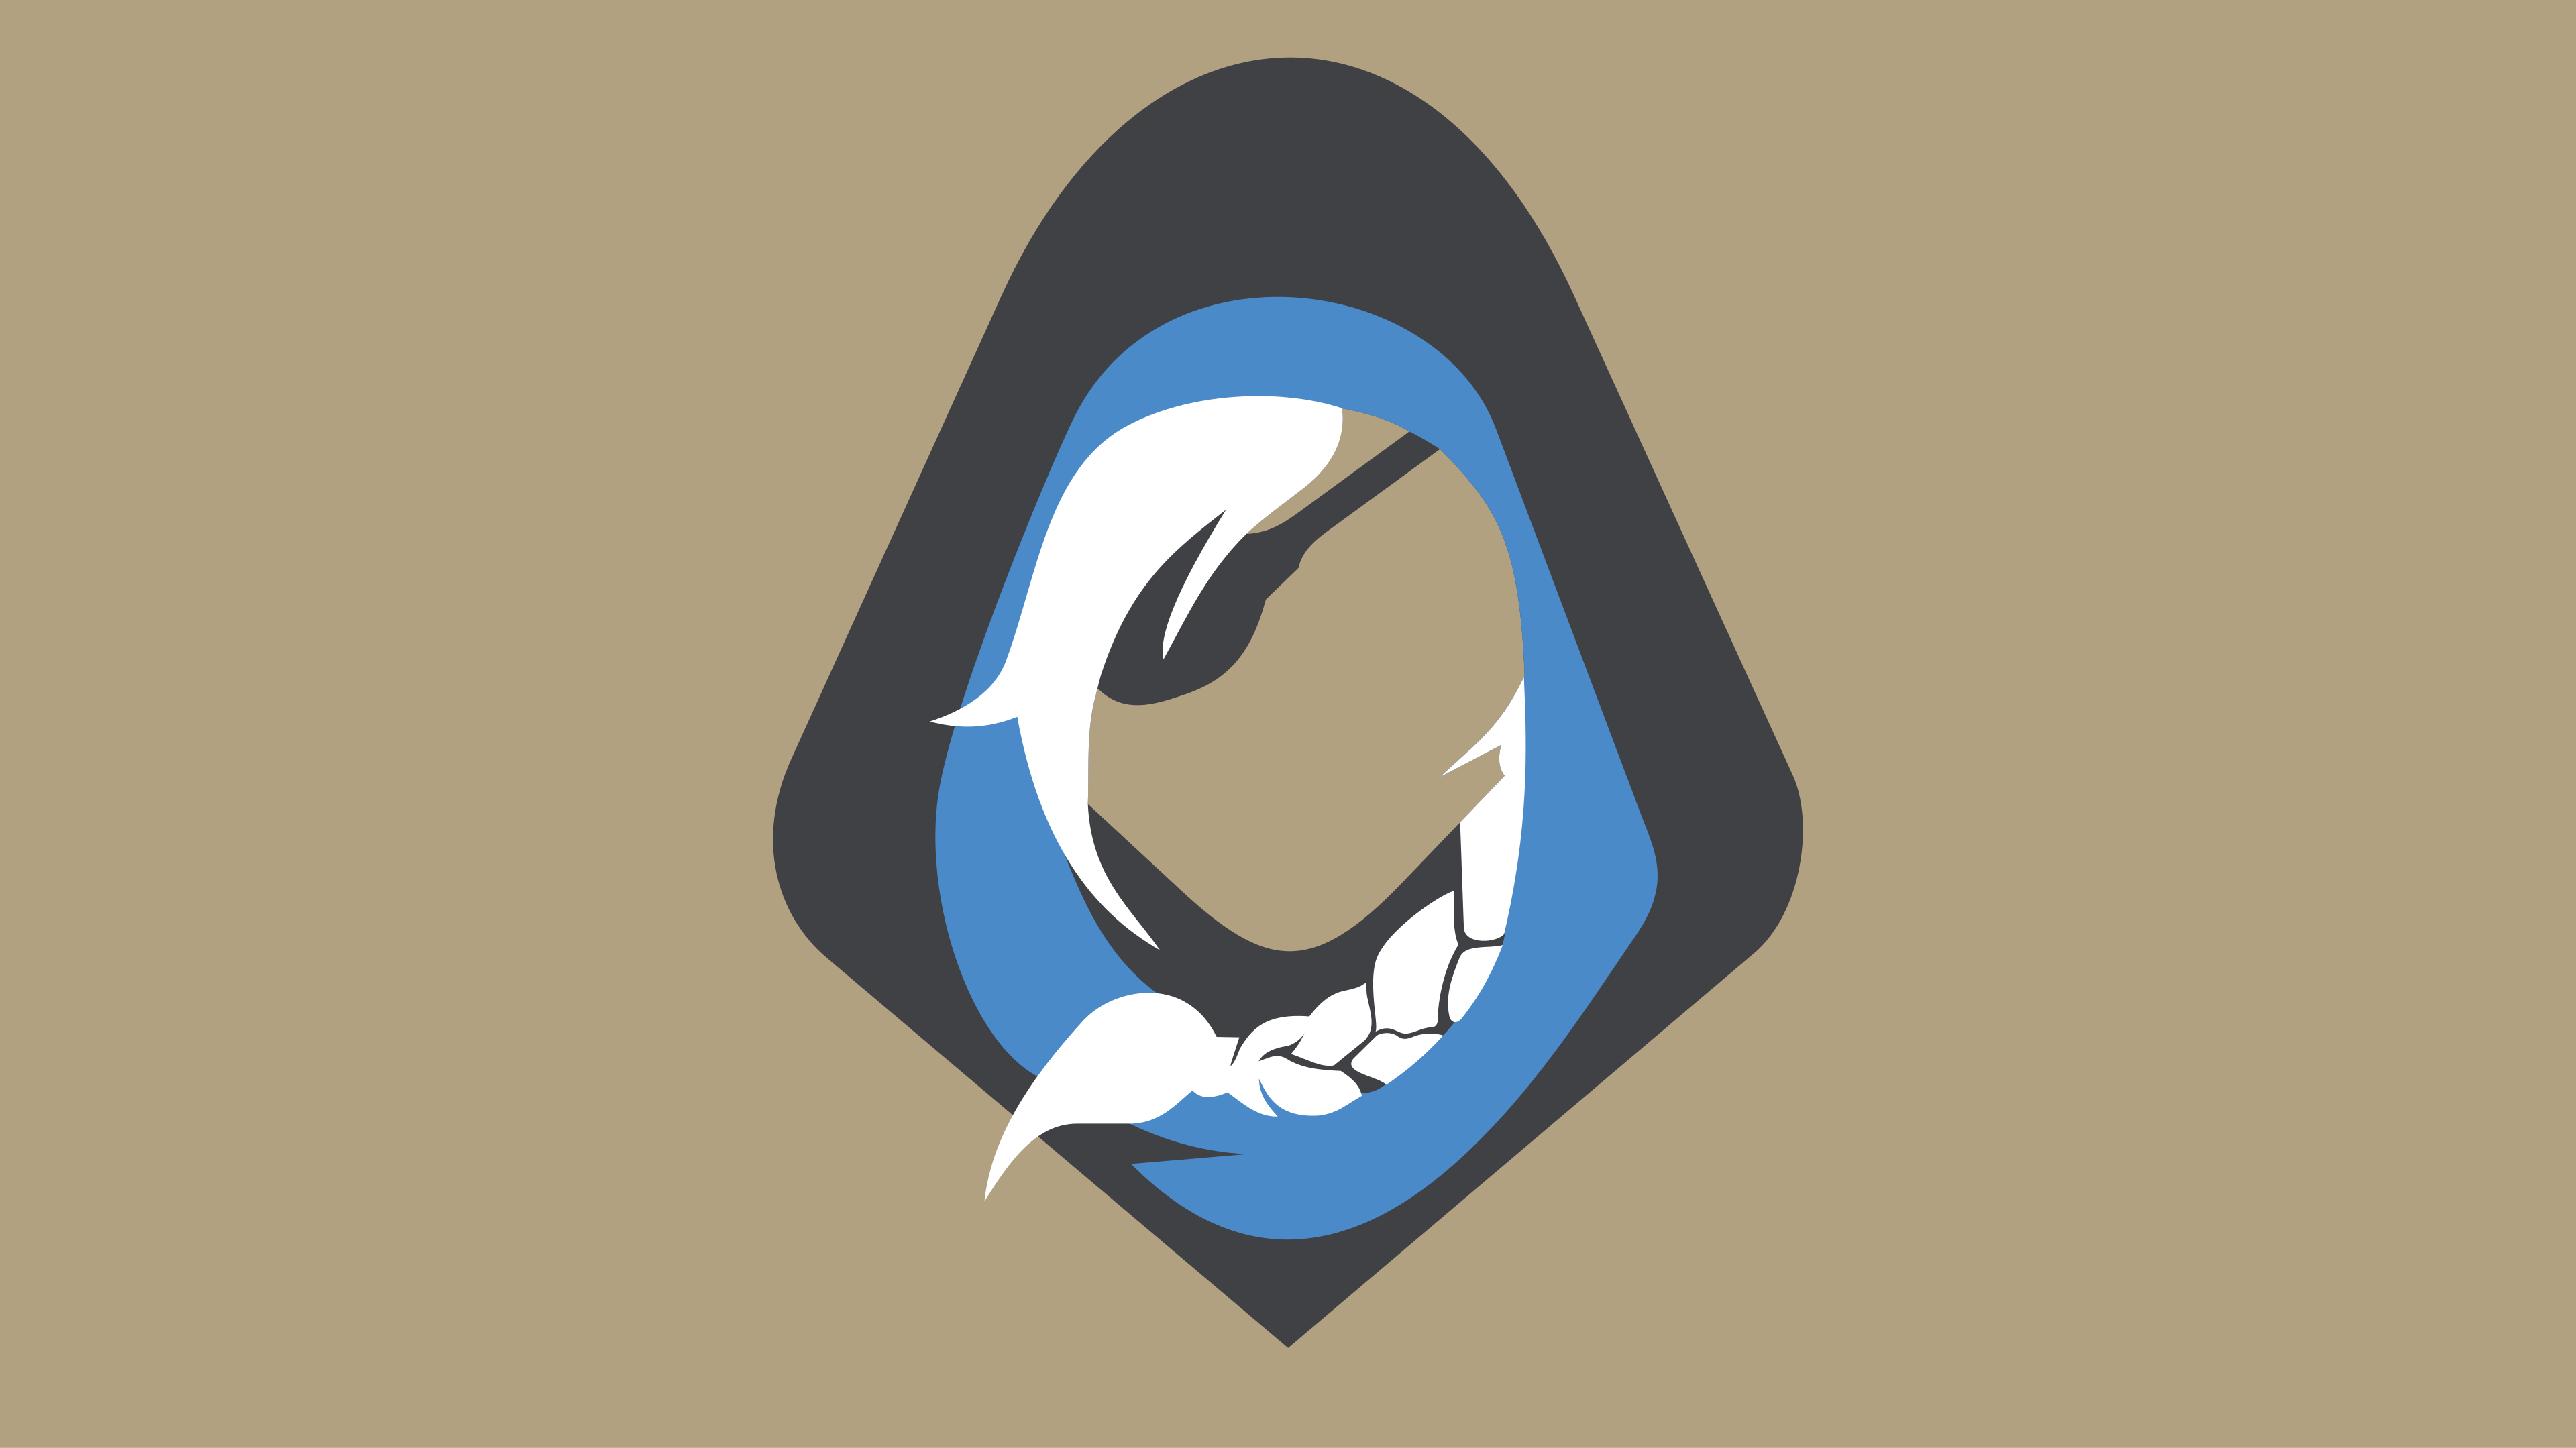 Overwatch clipart 4k free library 4K Overwatch heroe's icons backgrounds - Album on Imgur free library